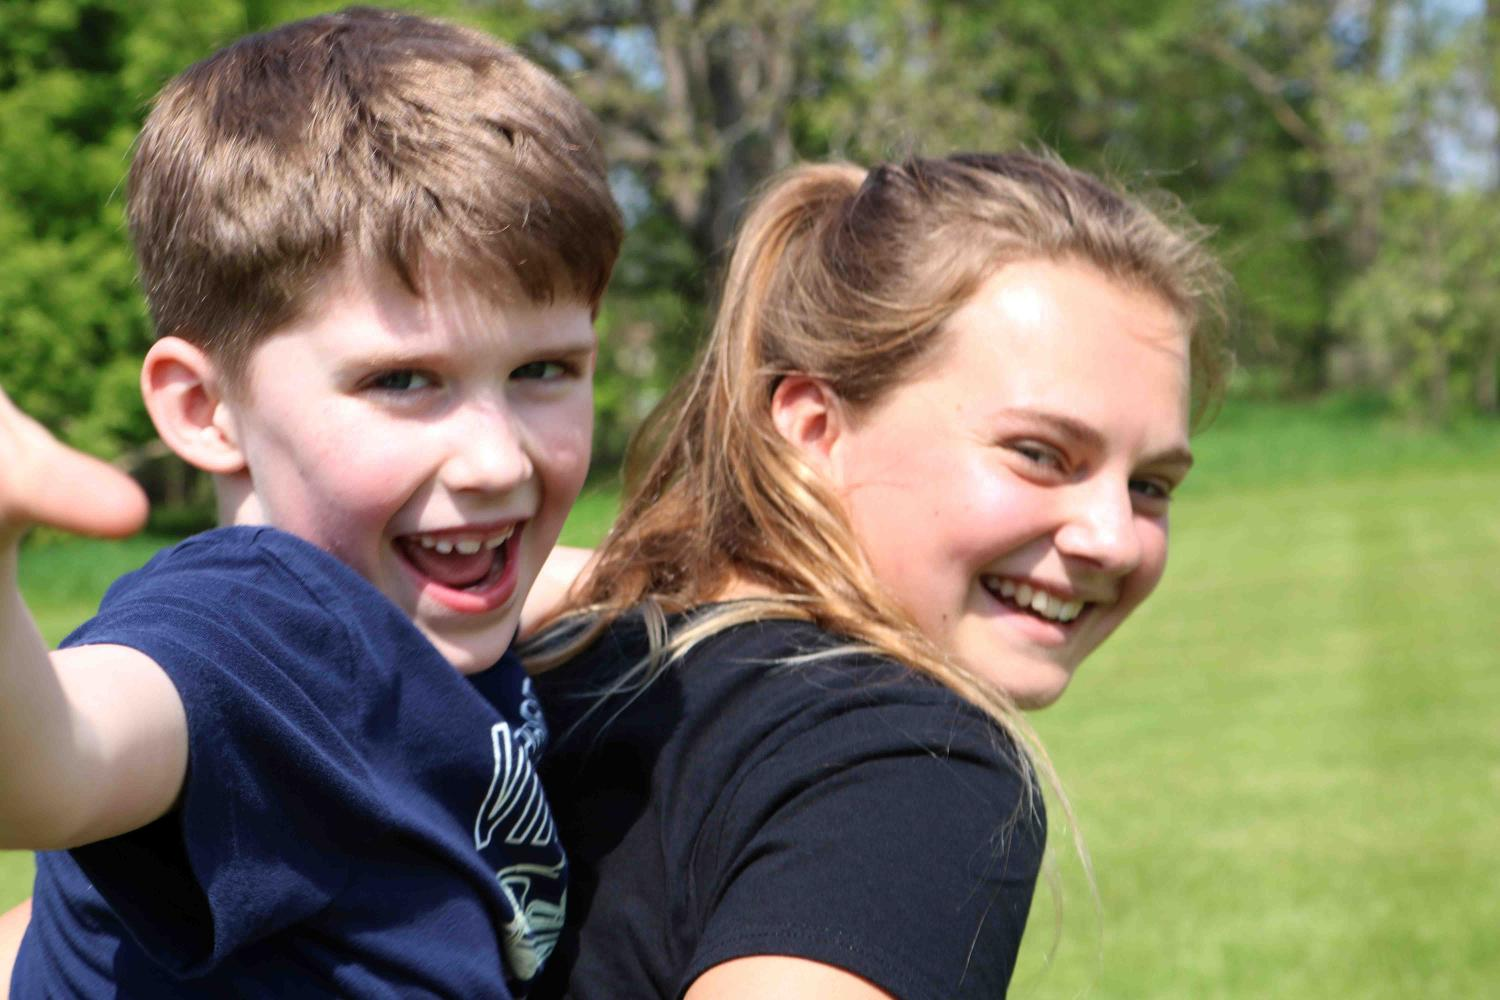 Participating in pond day, freshman Erica Behnfeldt gives a little boy a piggy back ride around while playing tag, Pond day allows high school students to interact with kids in elementary school and help them learn more about the sciences and the environment.